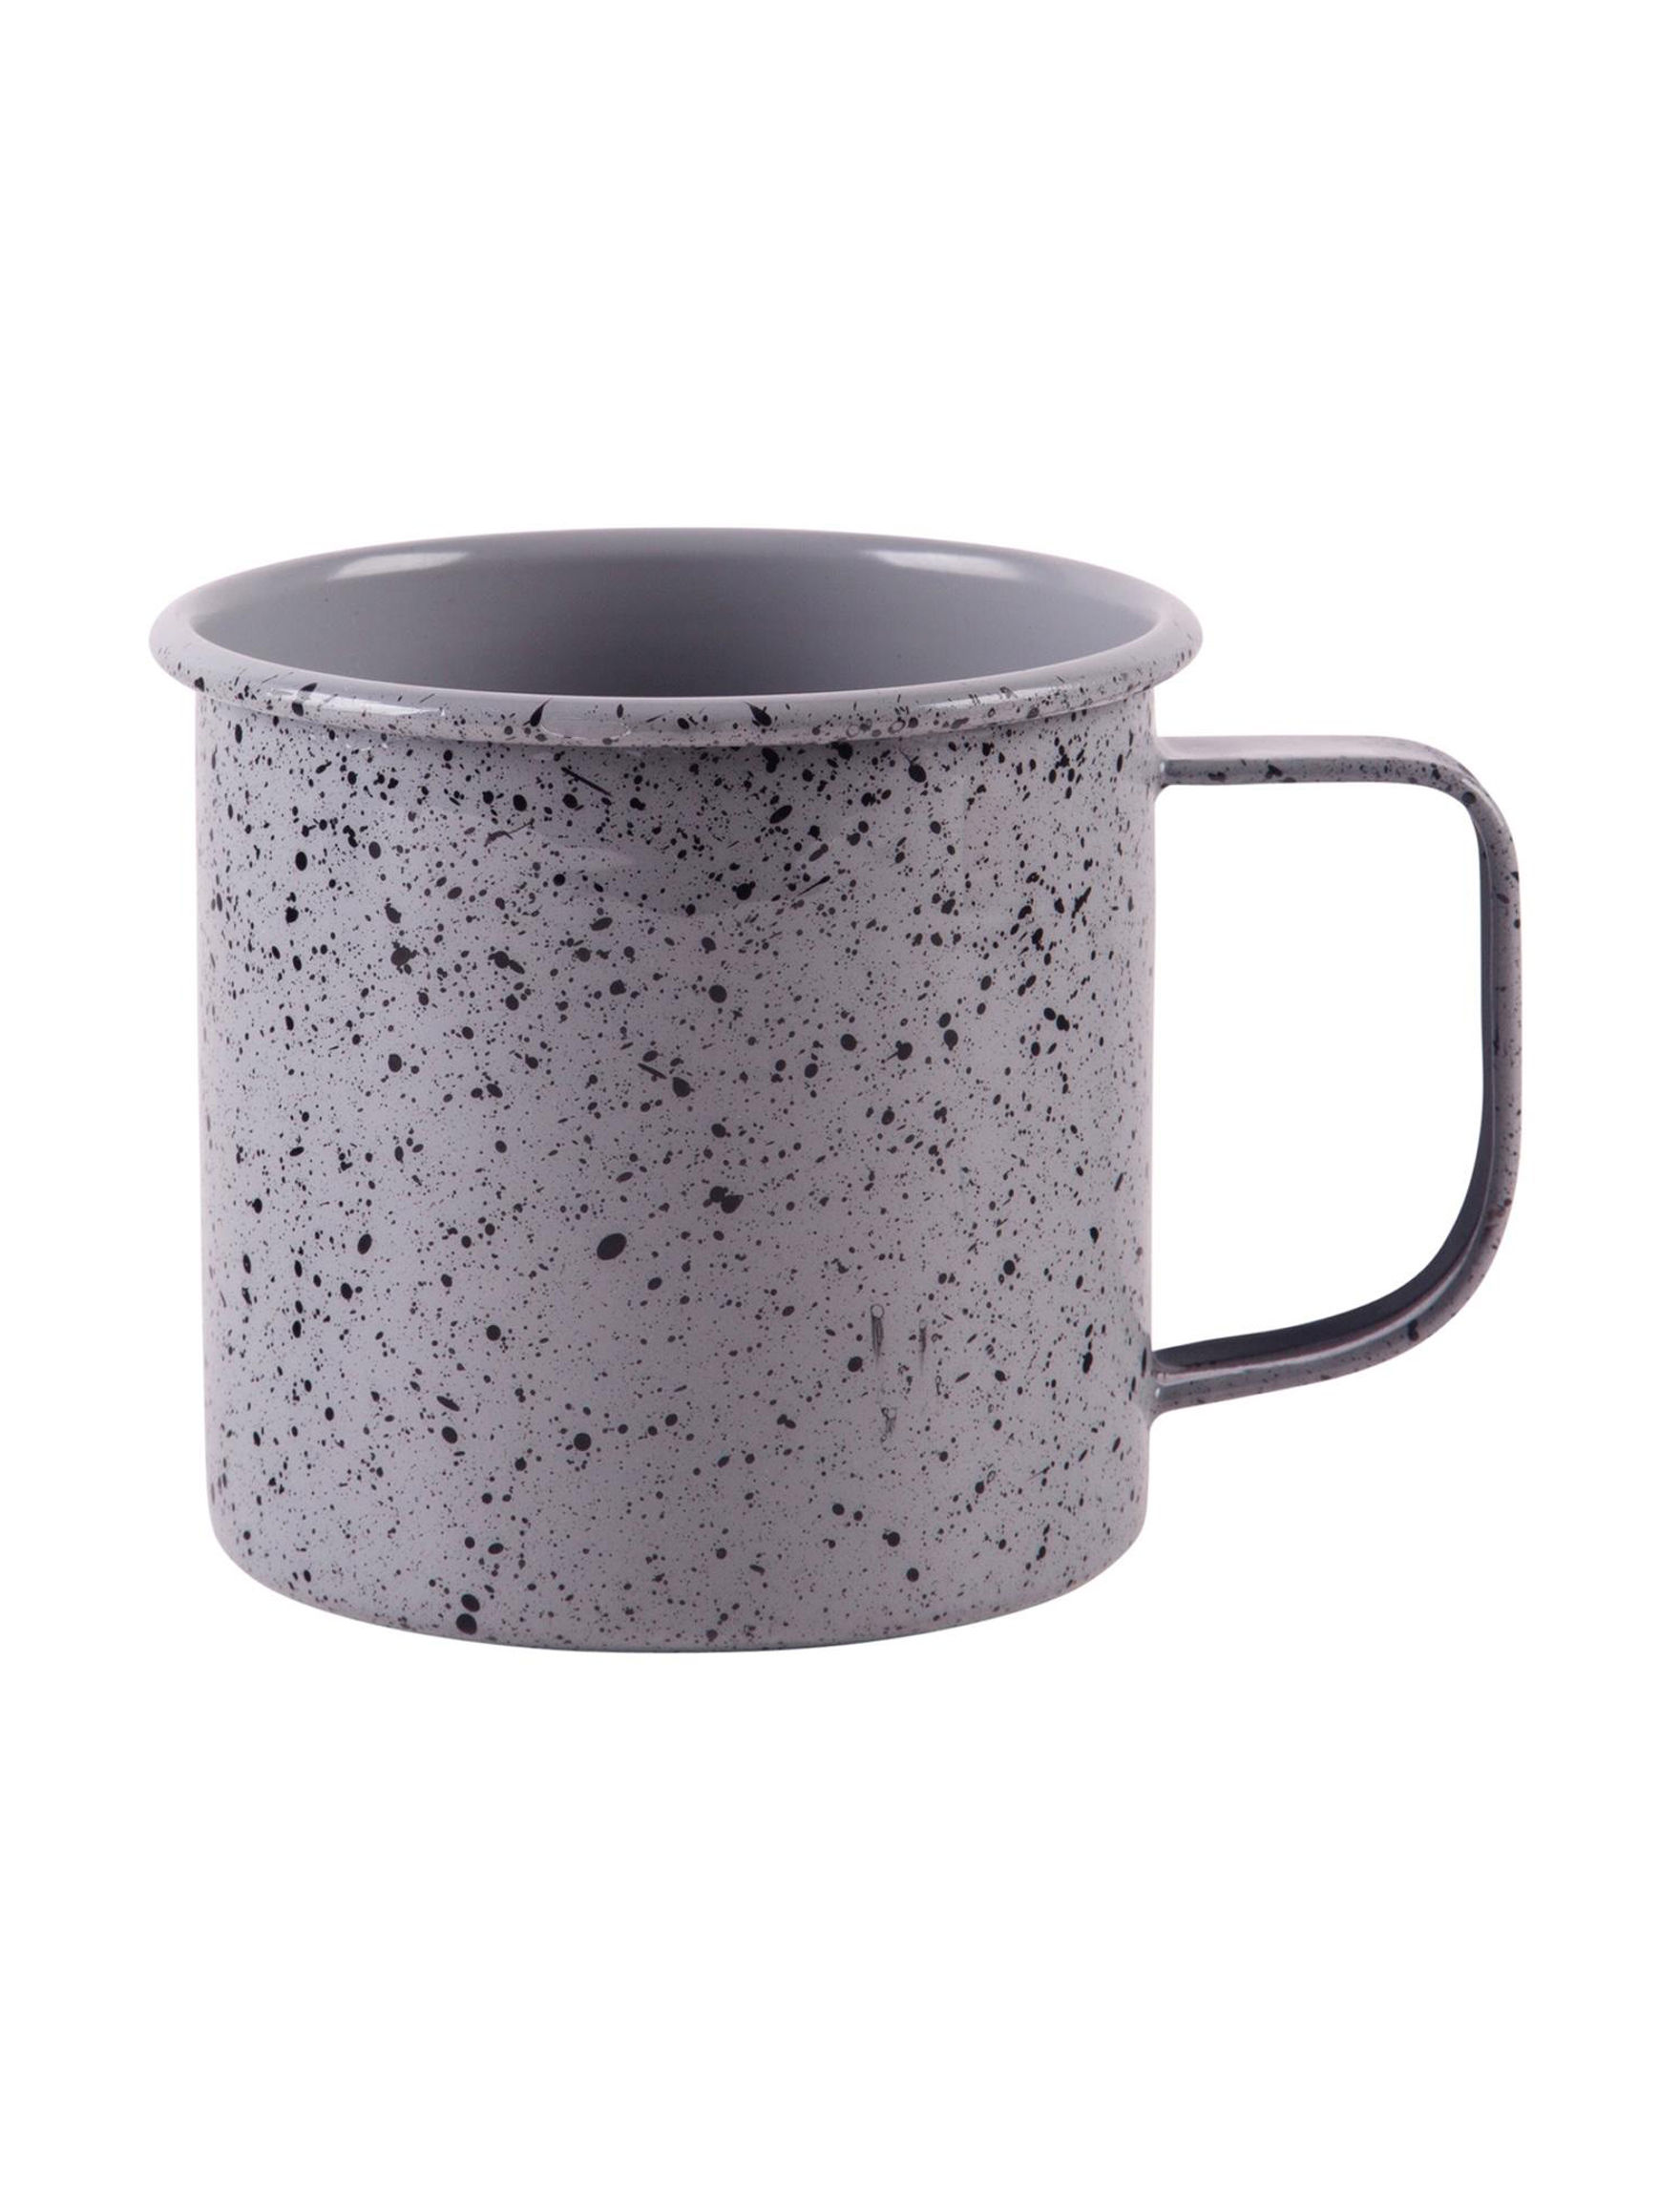 Home Essentials Grey / Black Mugs Drinkware